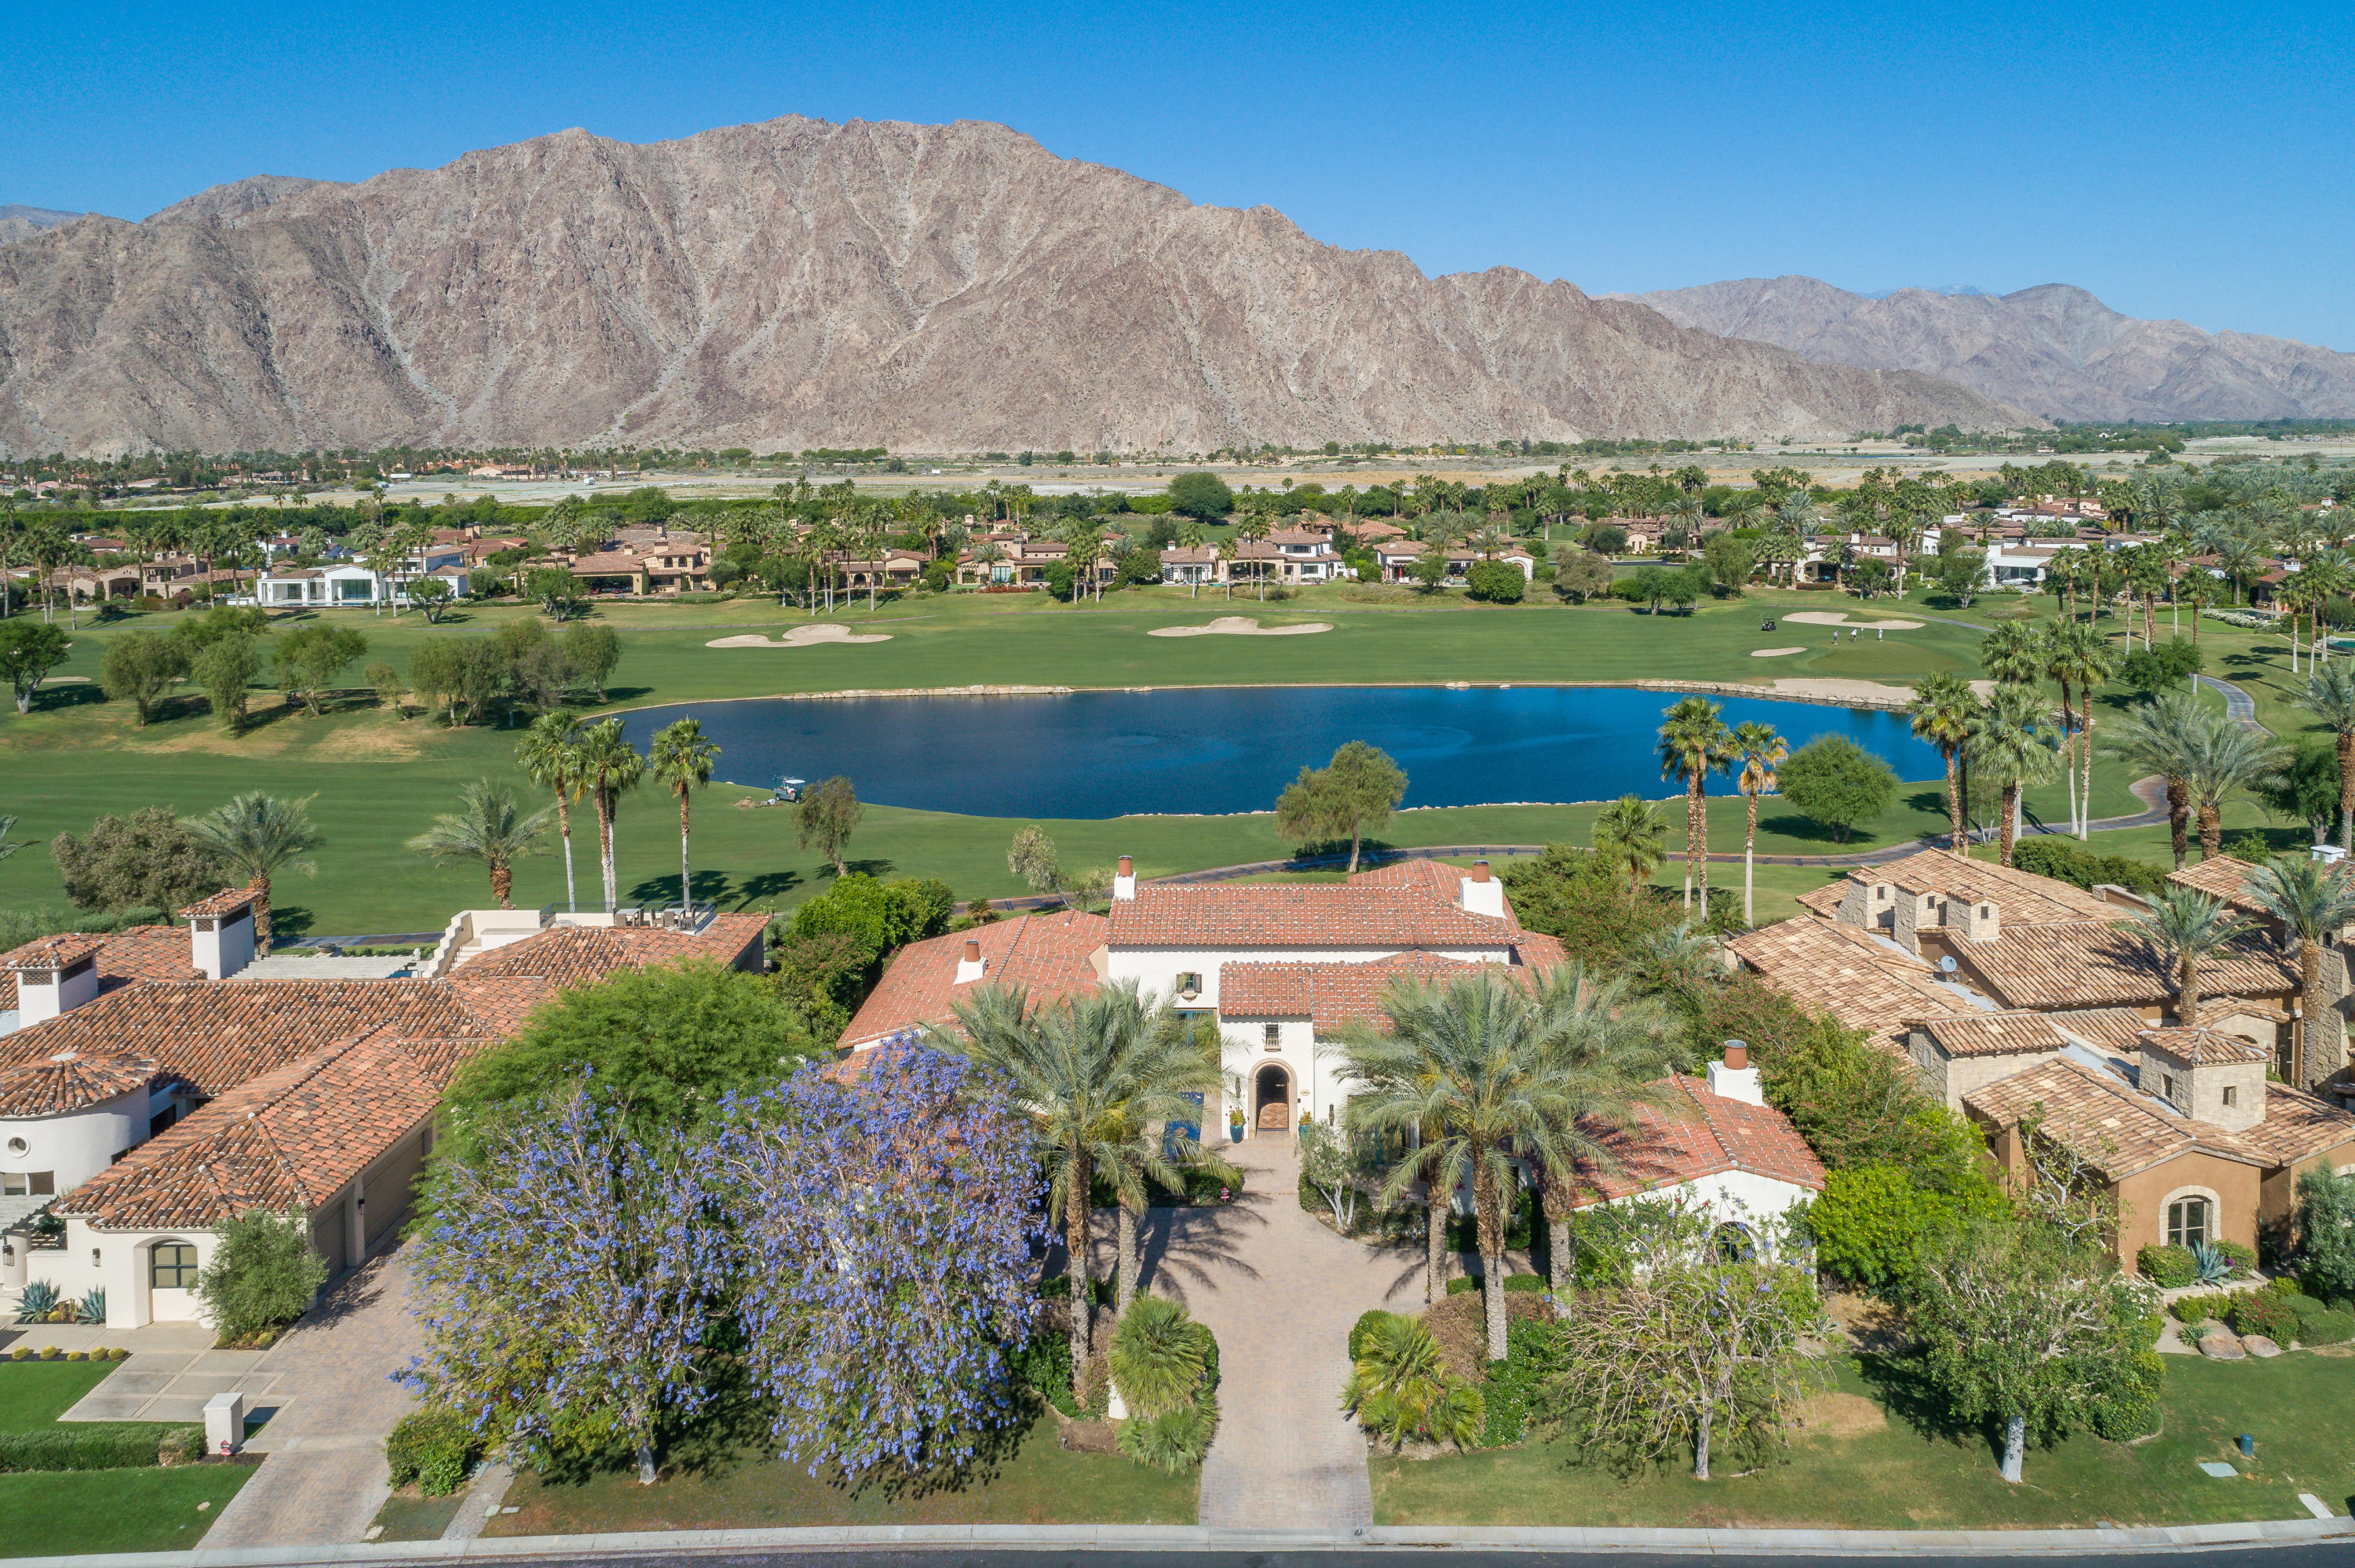 53395 Via Strada, La Quinta, California 92253, 4 Bedrooms Bedrooms, ,5 BathroomsBathrooms,Residential,For Sale,53395 Via Strada,219042638